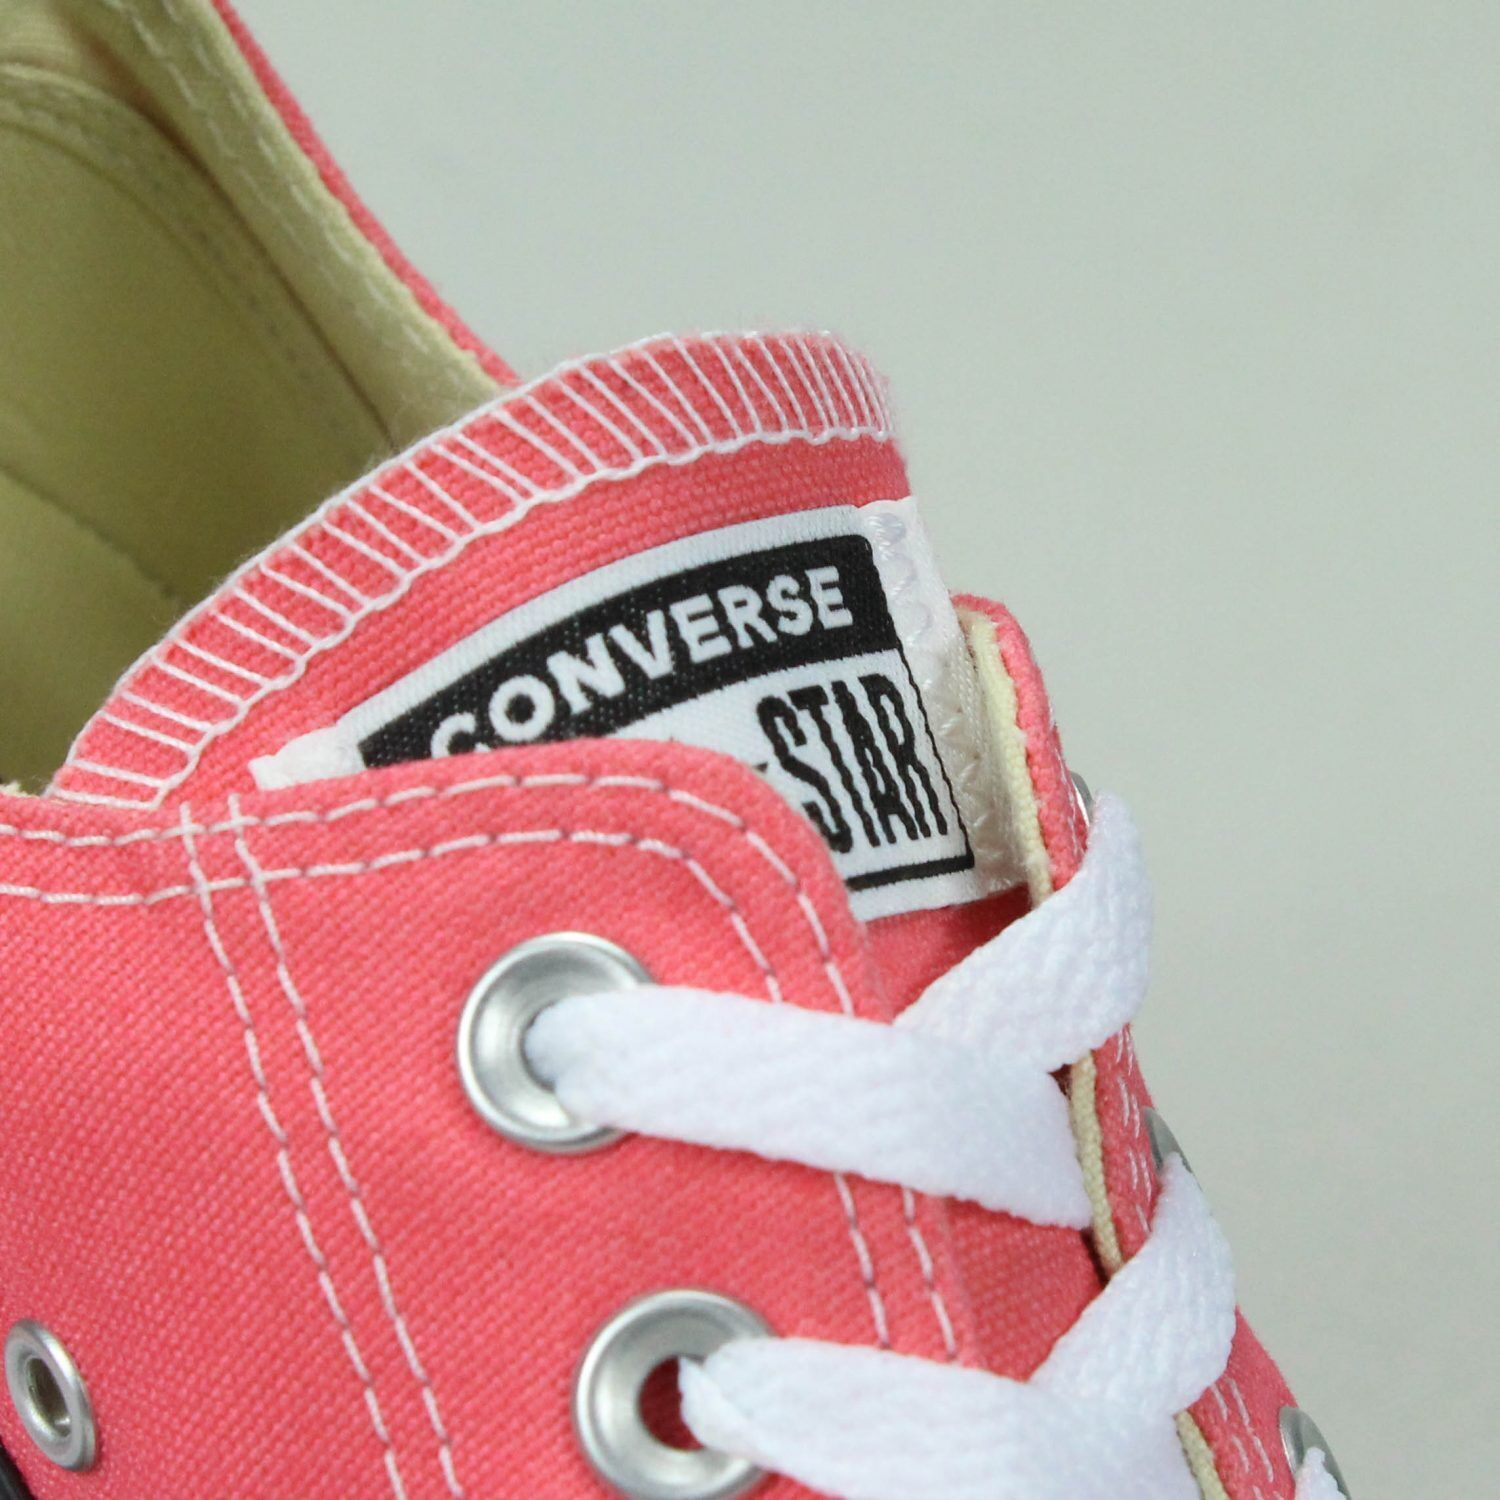 Converse All Star Ox Low Coral Shoes Trainers New in Coral Low Size UK size 4,5,6,7,8,9 52f7d6